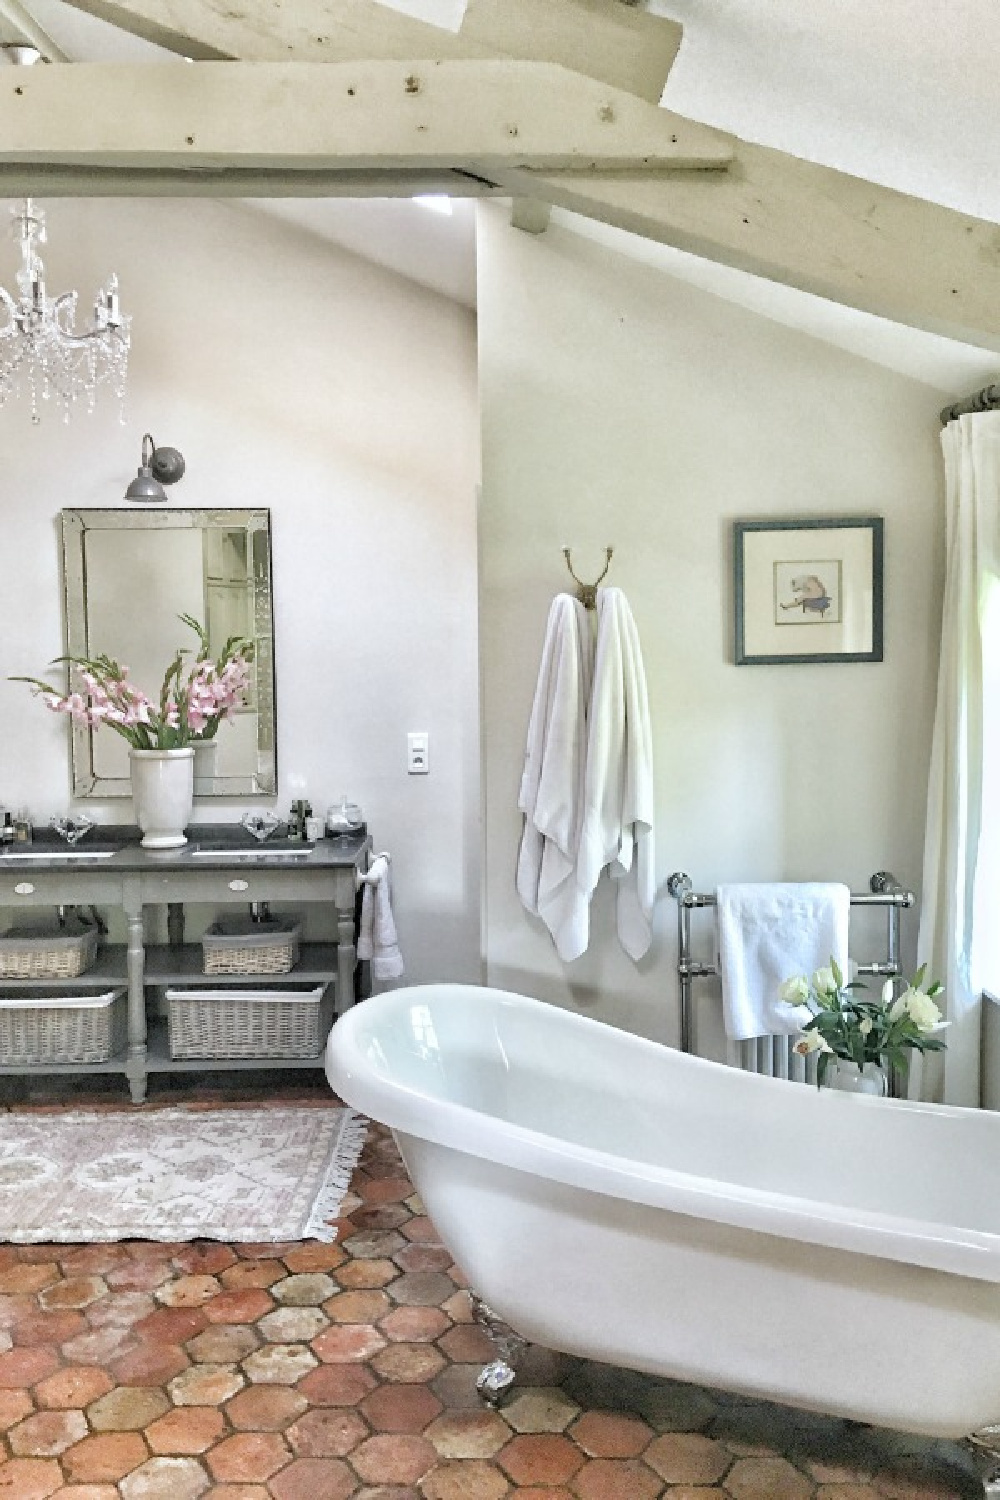 Farrow and Ball Strong White on walls in a French farmhouse bathroom.French farmhouse design inspiration with an interview with Vivi et Margot. Come be inspired on Hello Lovely and learn the paint colors used in these beautiful authentic French country interiors. #frenchbathroom #rusticdecor #frenchfarmhouse #hellolovelystudio #frenchcountry #designinspiration #interiordesign #vivietmargot #rusticdecor #frenchhome #summerliving #europeancountry